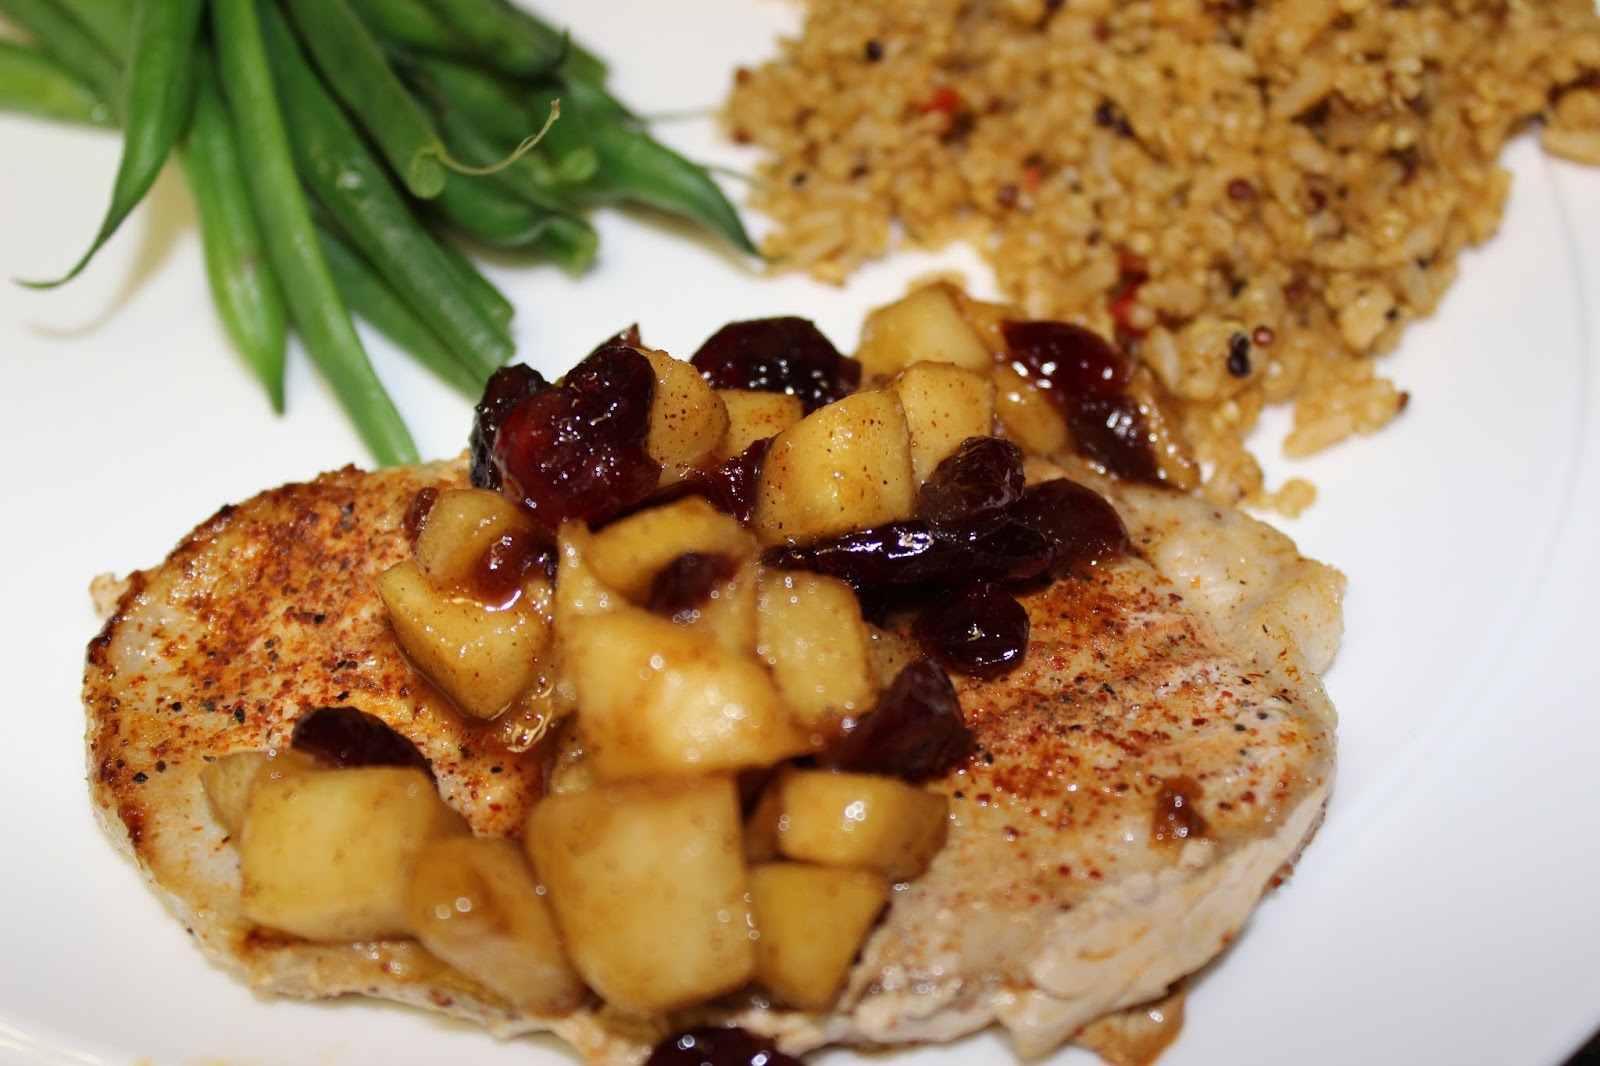 simply made with love: Spiced Pork Chops with Apple Chutney